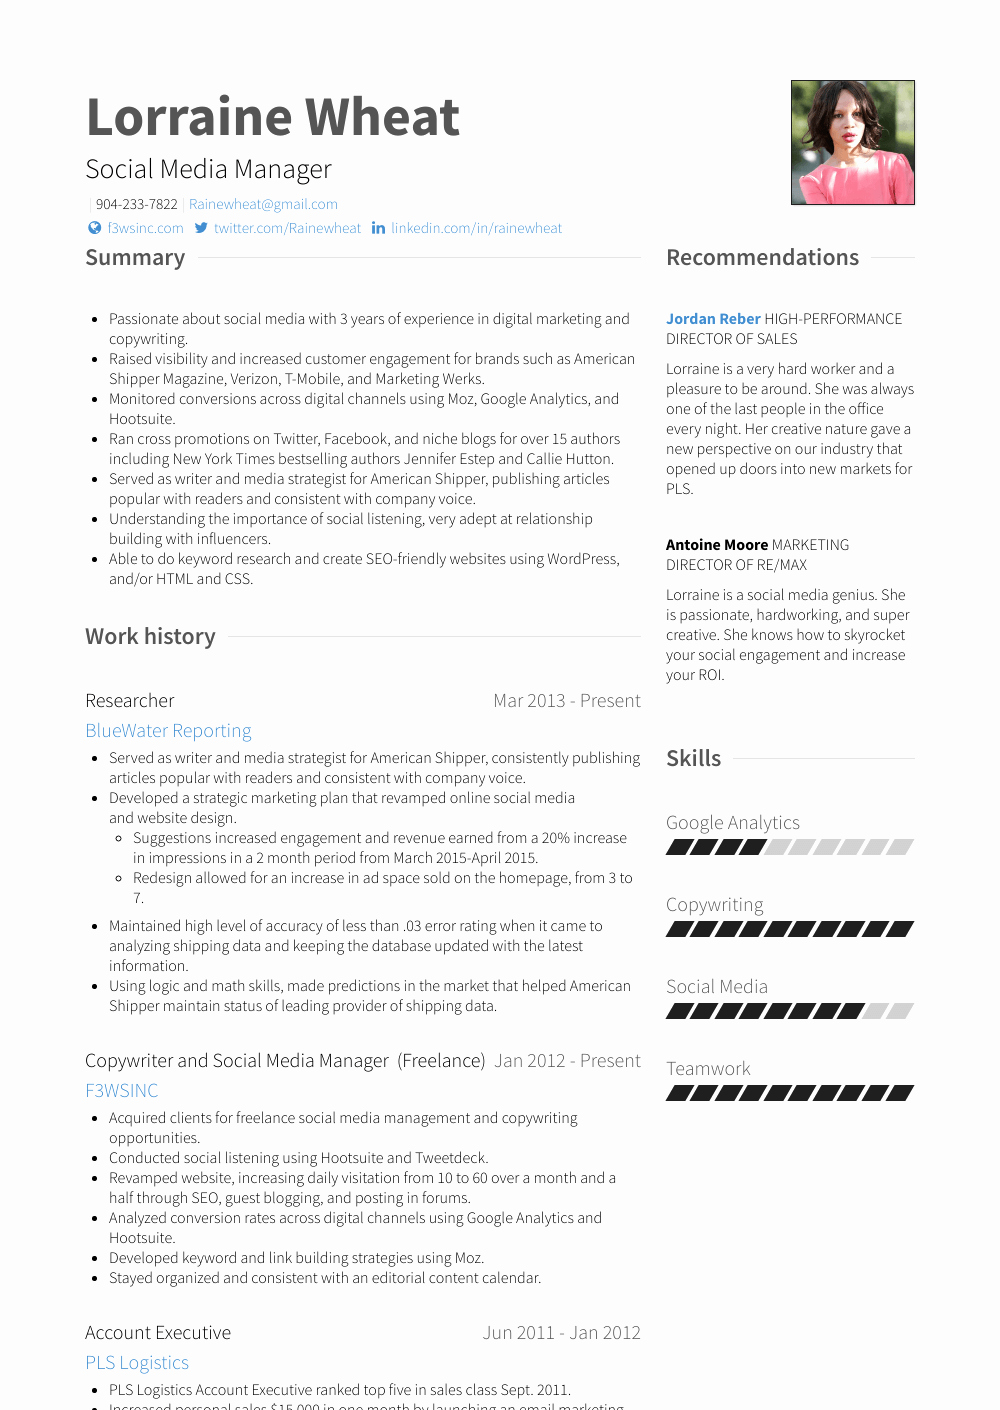 Social Media Manager Resumes Best Of social Media Manager Resume Samples & Templates